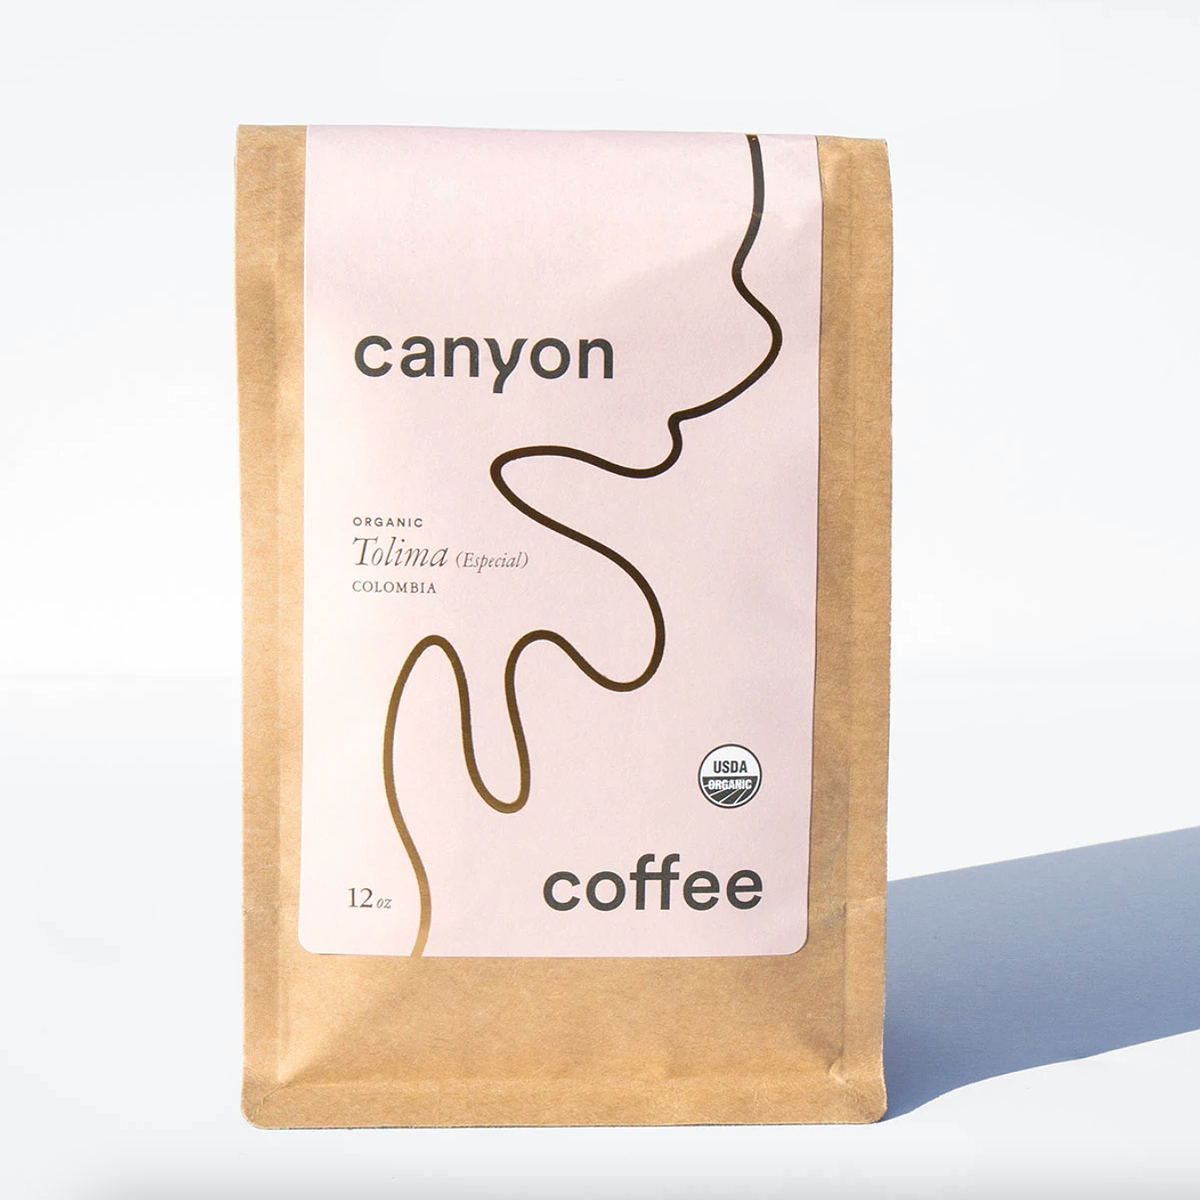 Canyon Coffee - Organic Tolima Especial, Colombia